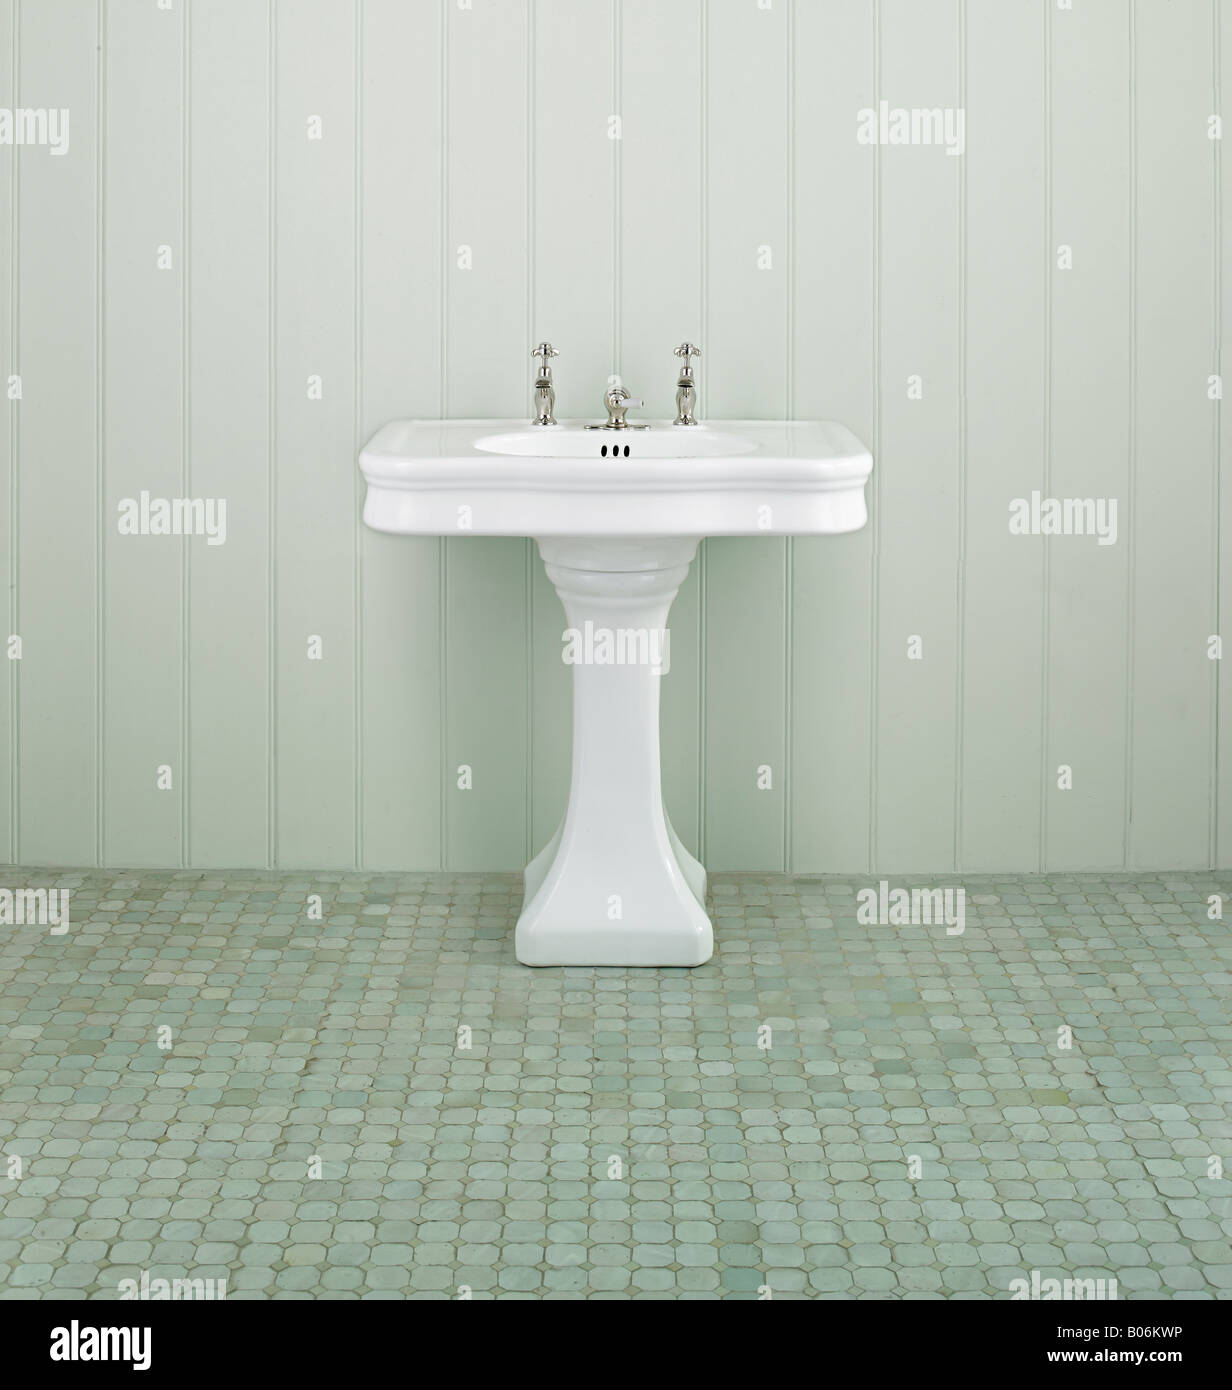 French Bathroom Sink Antique French Bathroom Sink Stock Photo Royalty Free Image